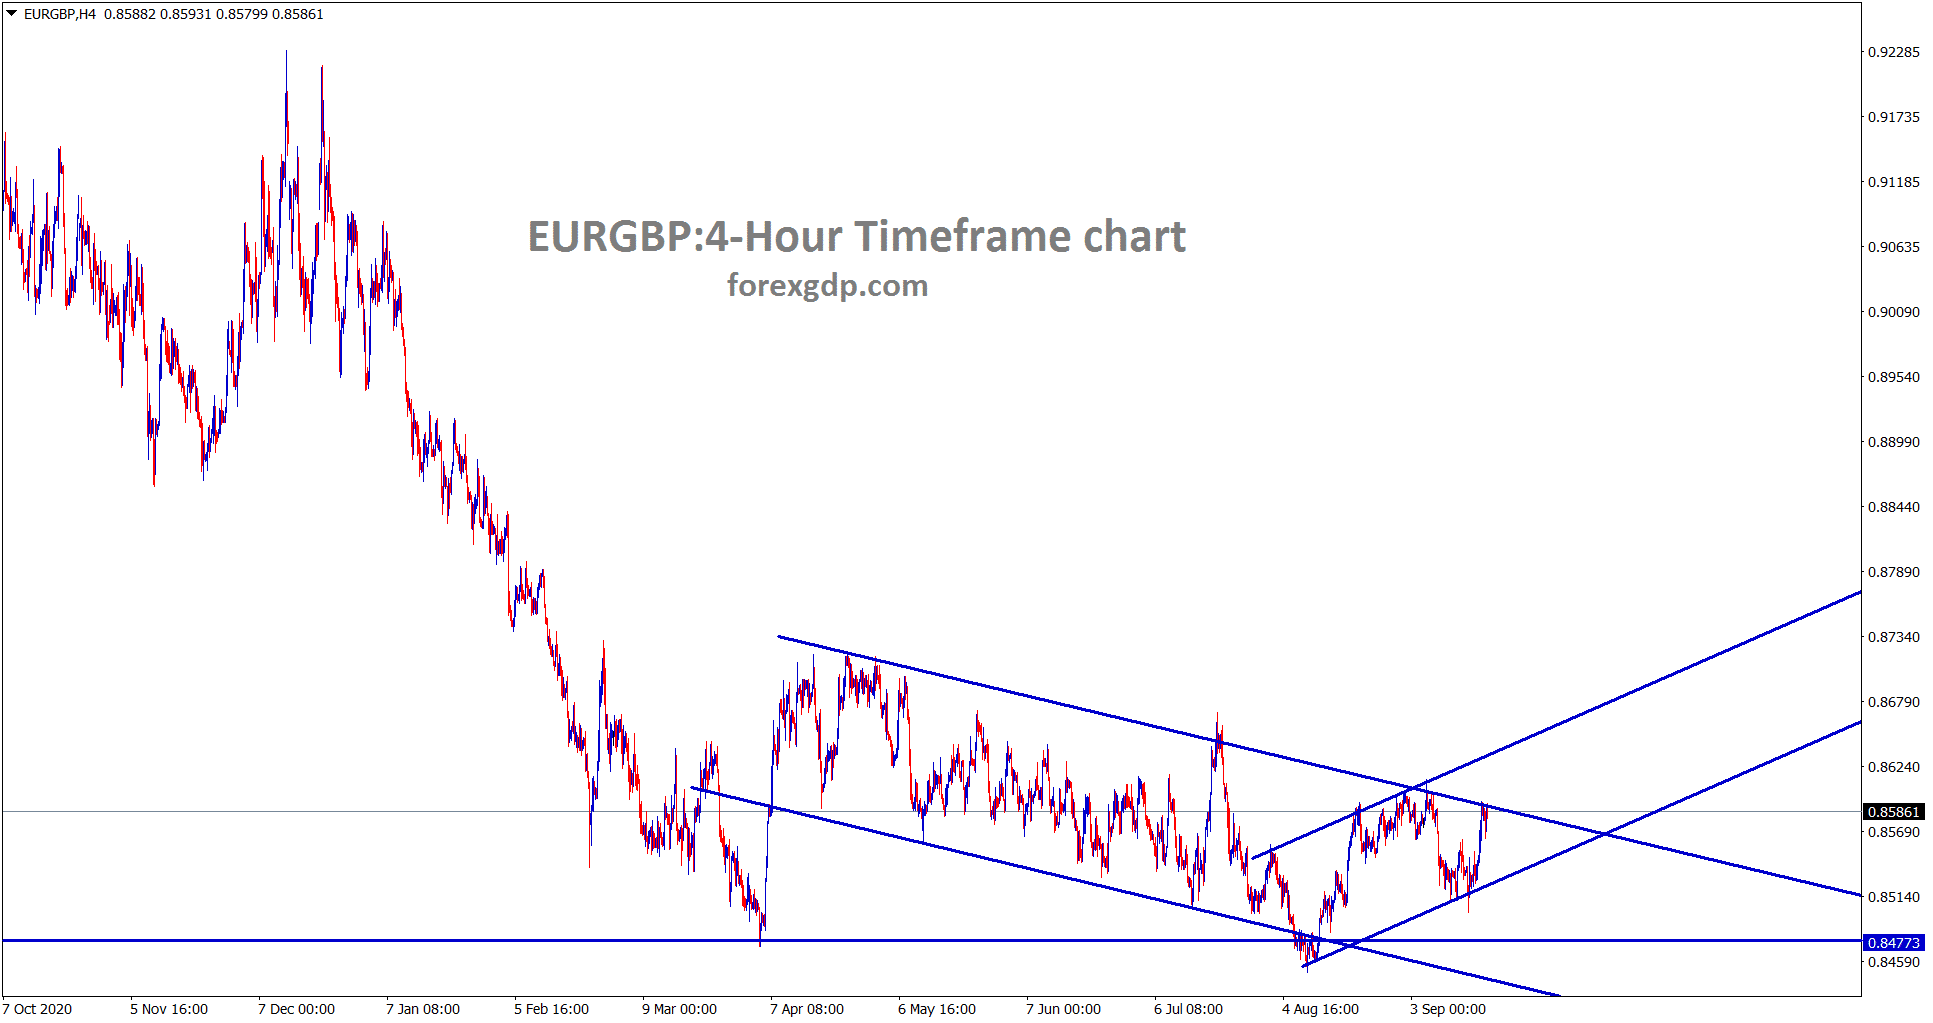 EUGBP is moving in an minor ascending channel now however wait for major descending channel breakout to buy EURGBP